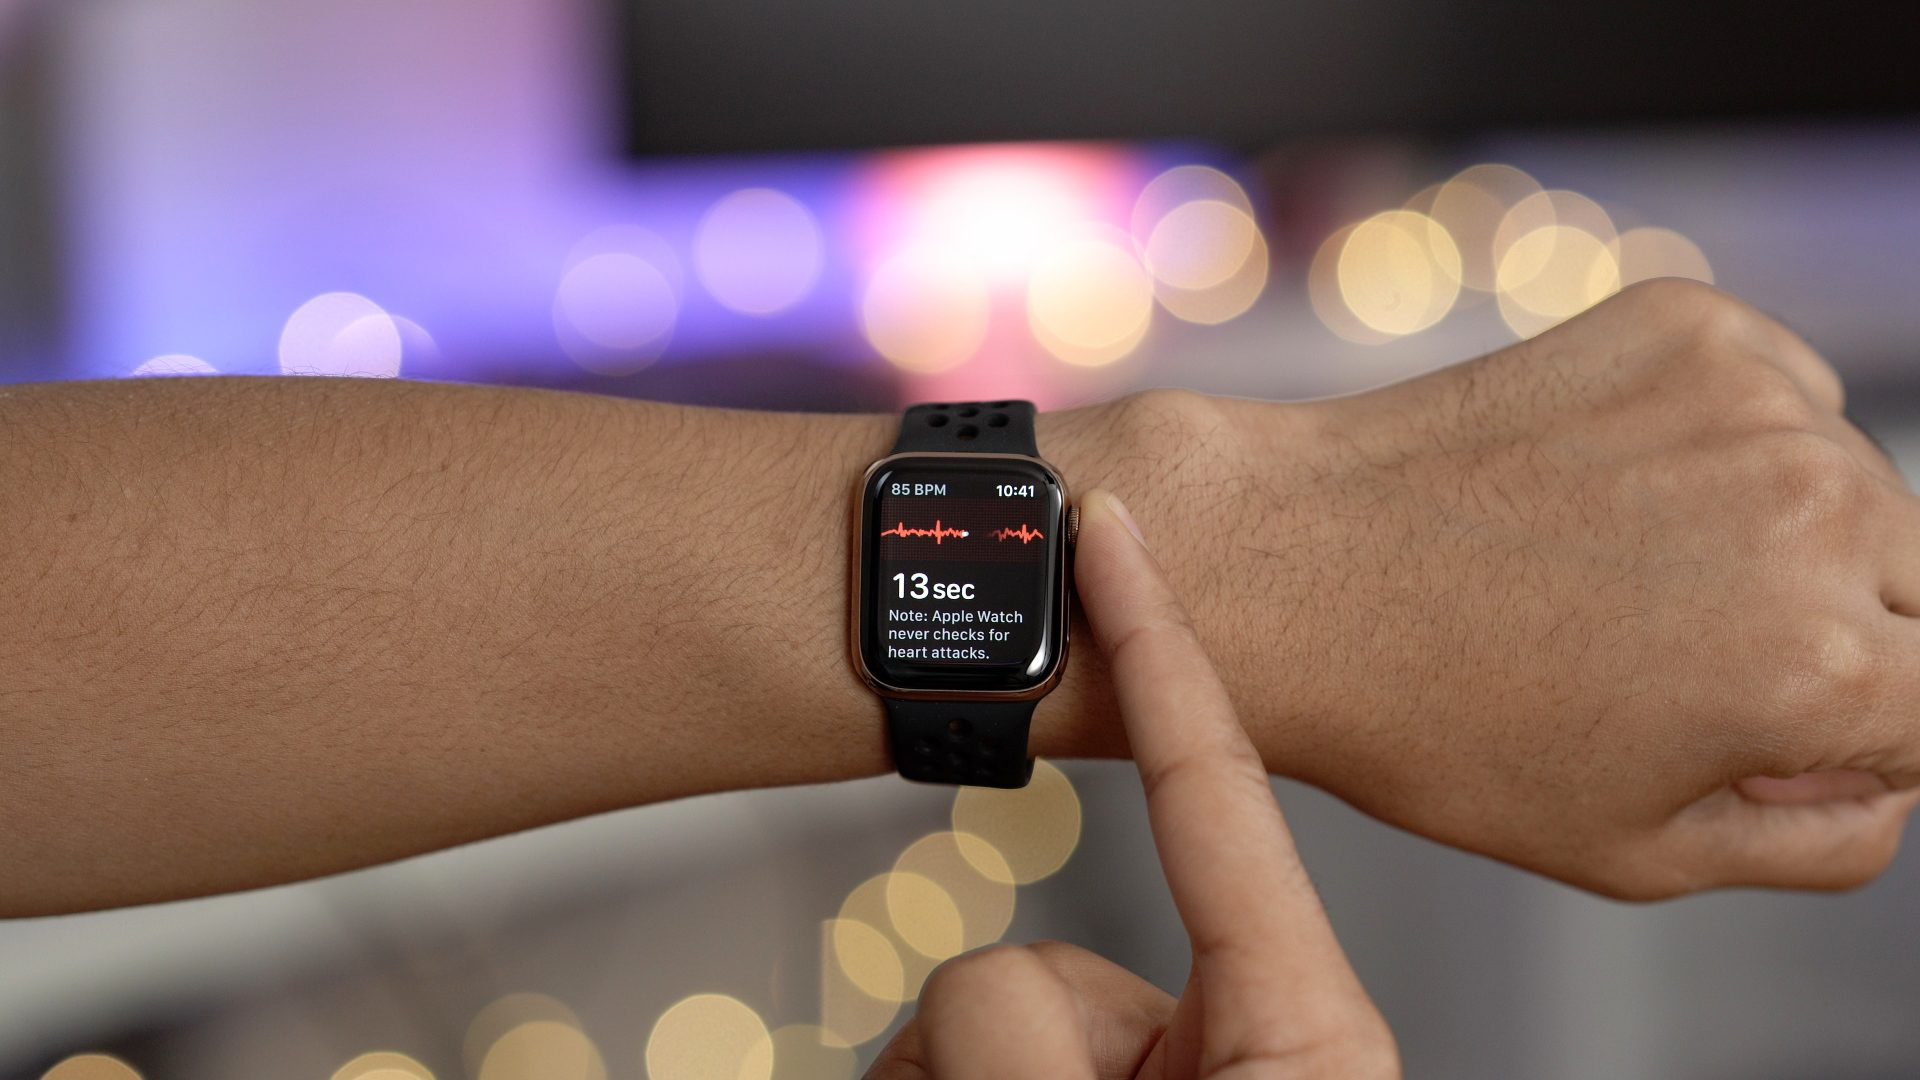 Apple-Watch-ECG-App-watchOS-5.1.2-Whats-New1